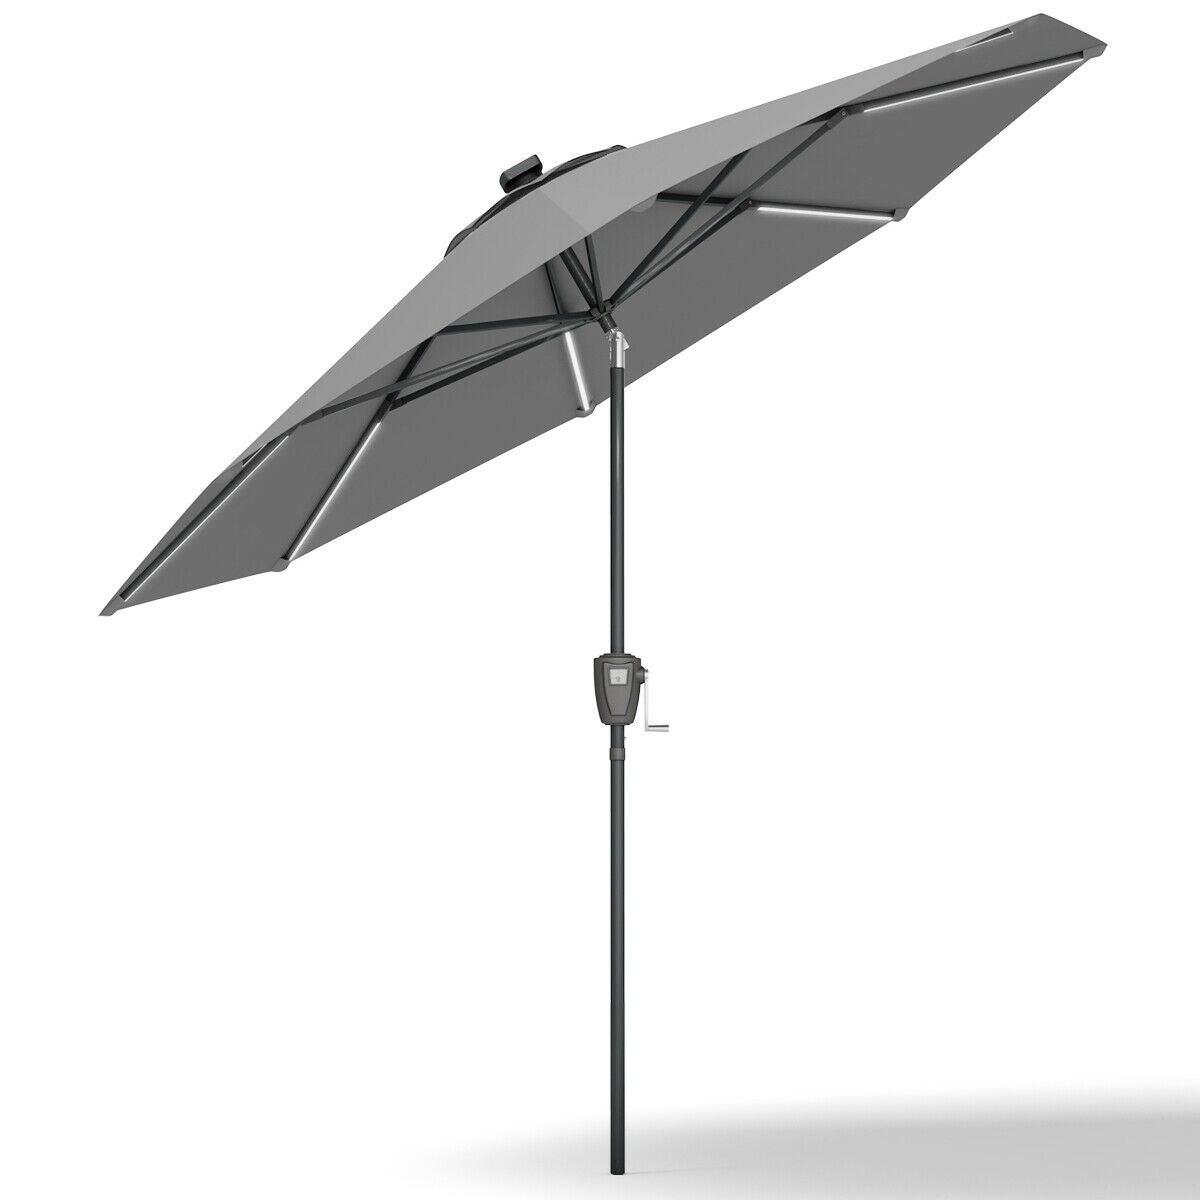 ece66b3b440c8a Shop Gymax 9 FT Patio Waterproof Solar Umbrella LED Light Tilt Gray - Free  Shipping Today - Overstock - 26438153